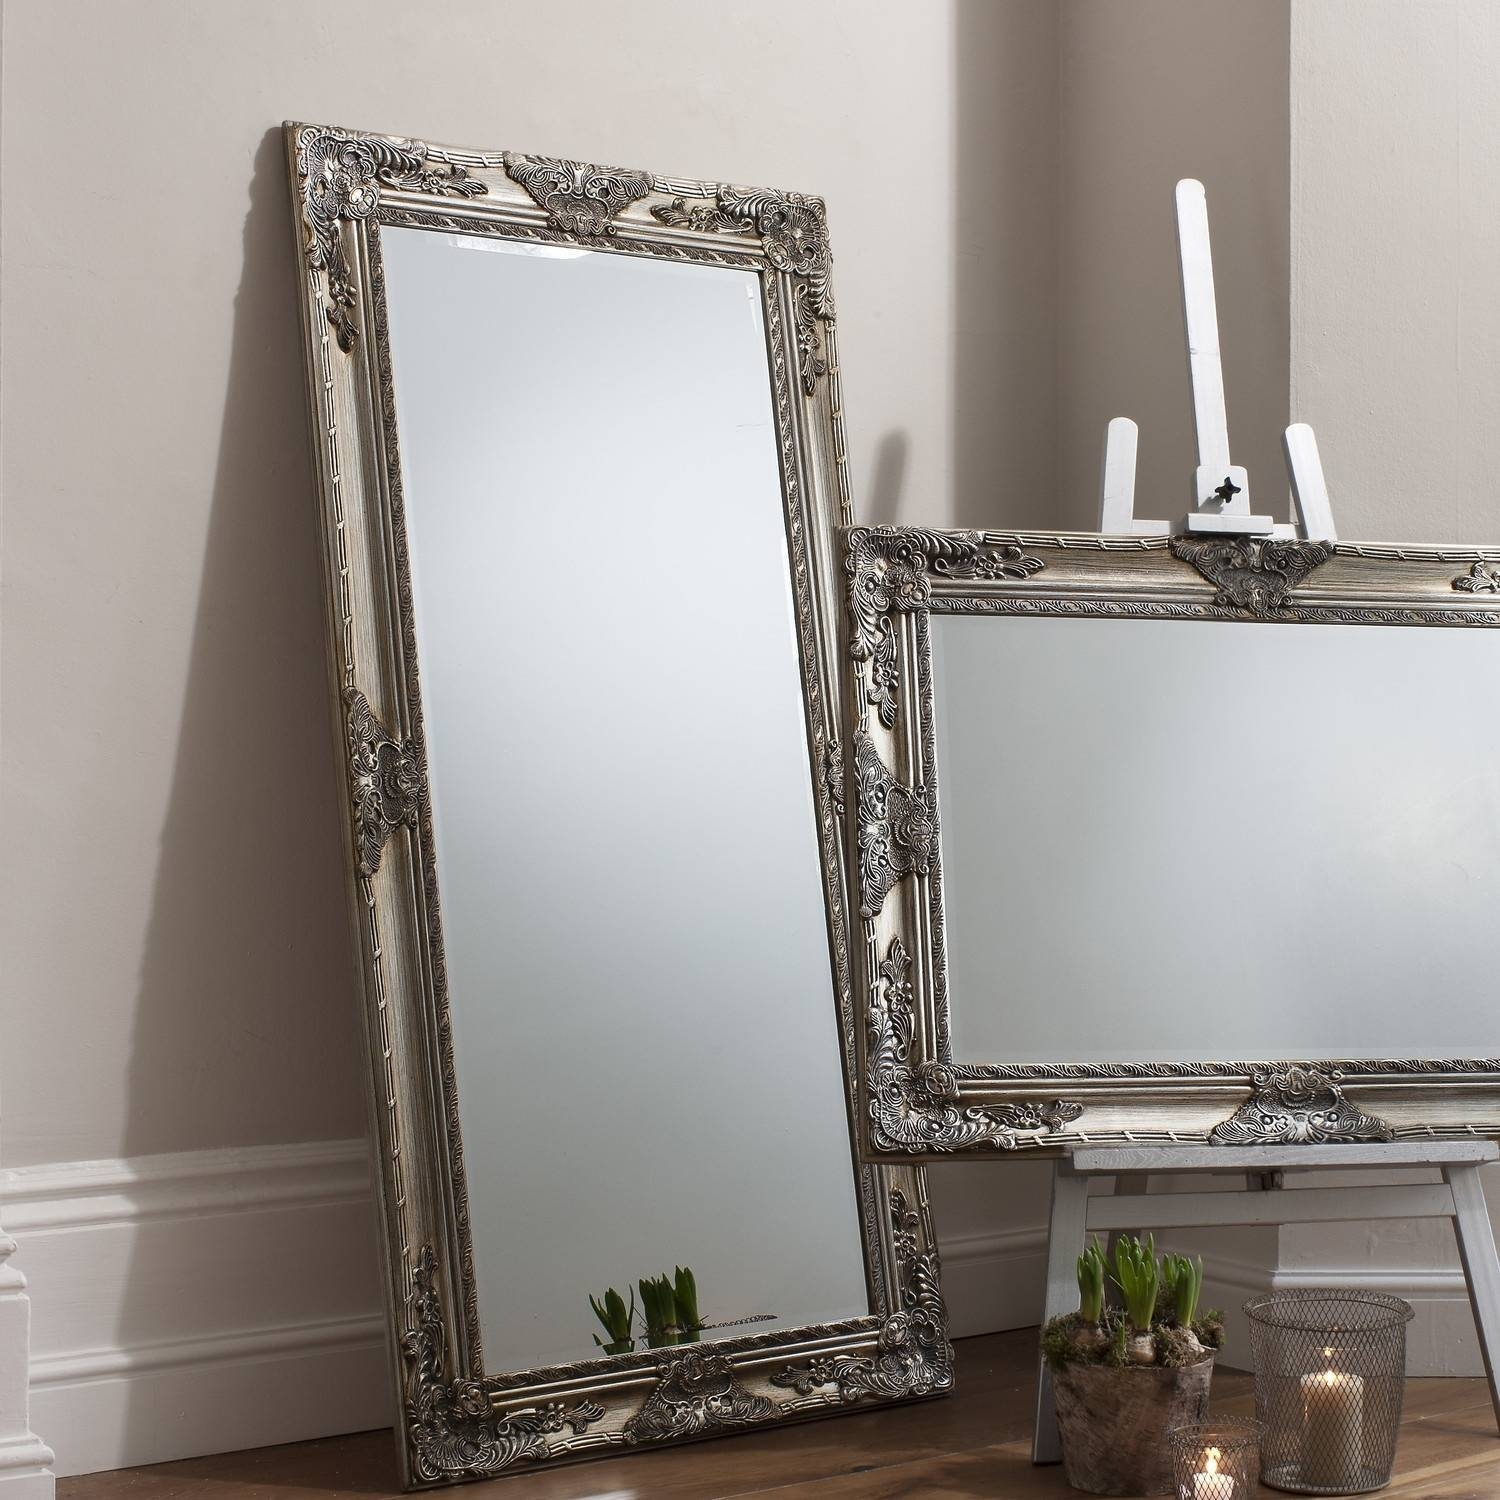 Best 15 of extra large floor standing mirrors for Large decorative floor mirrors